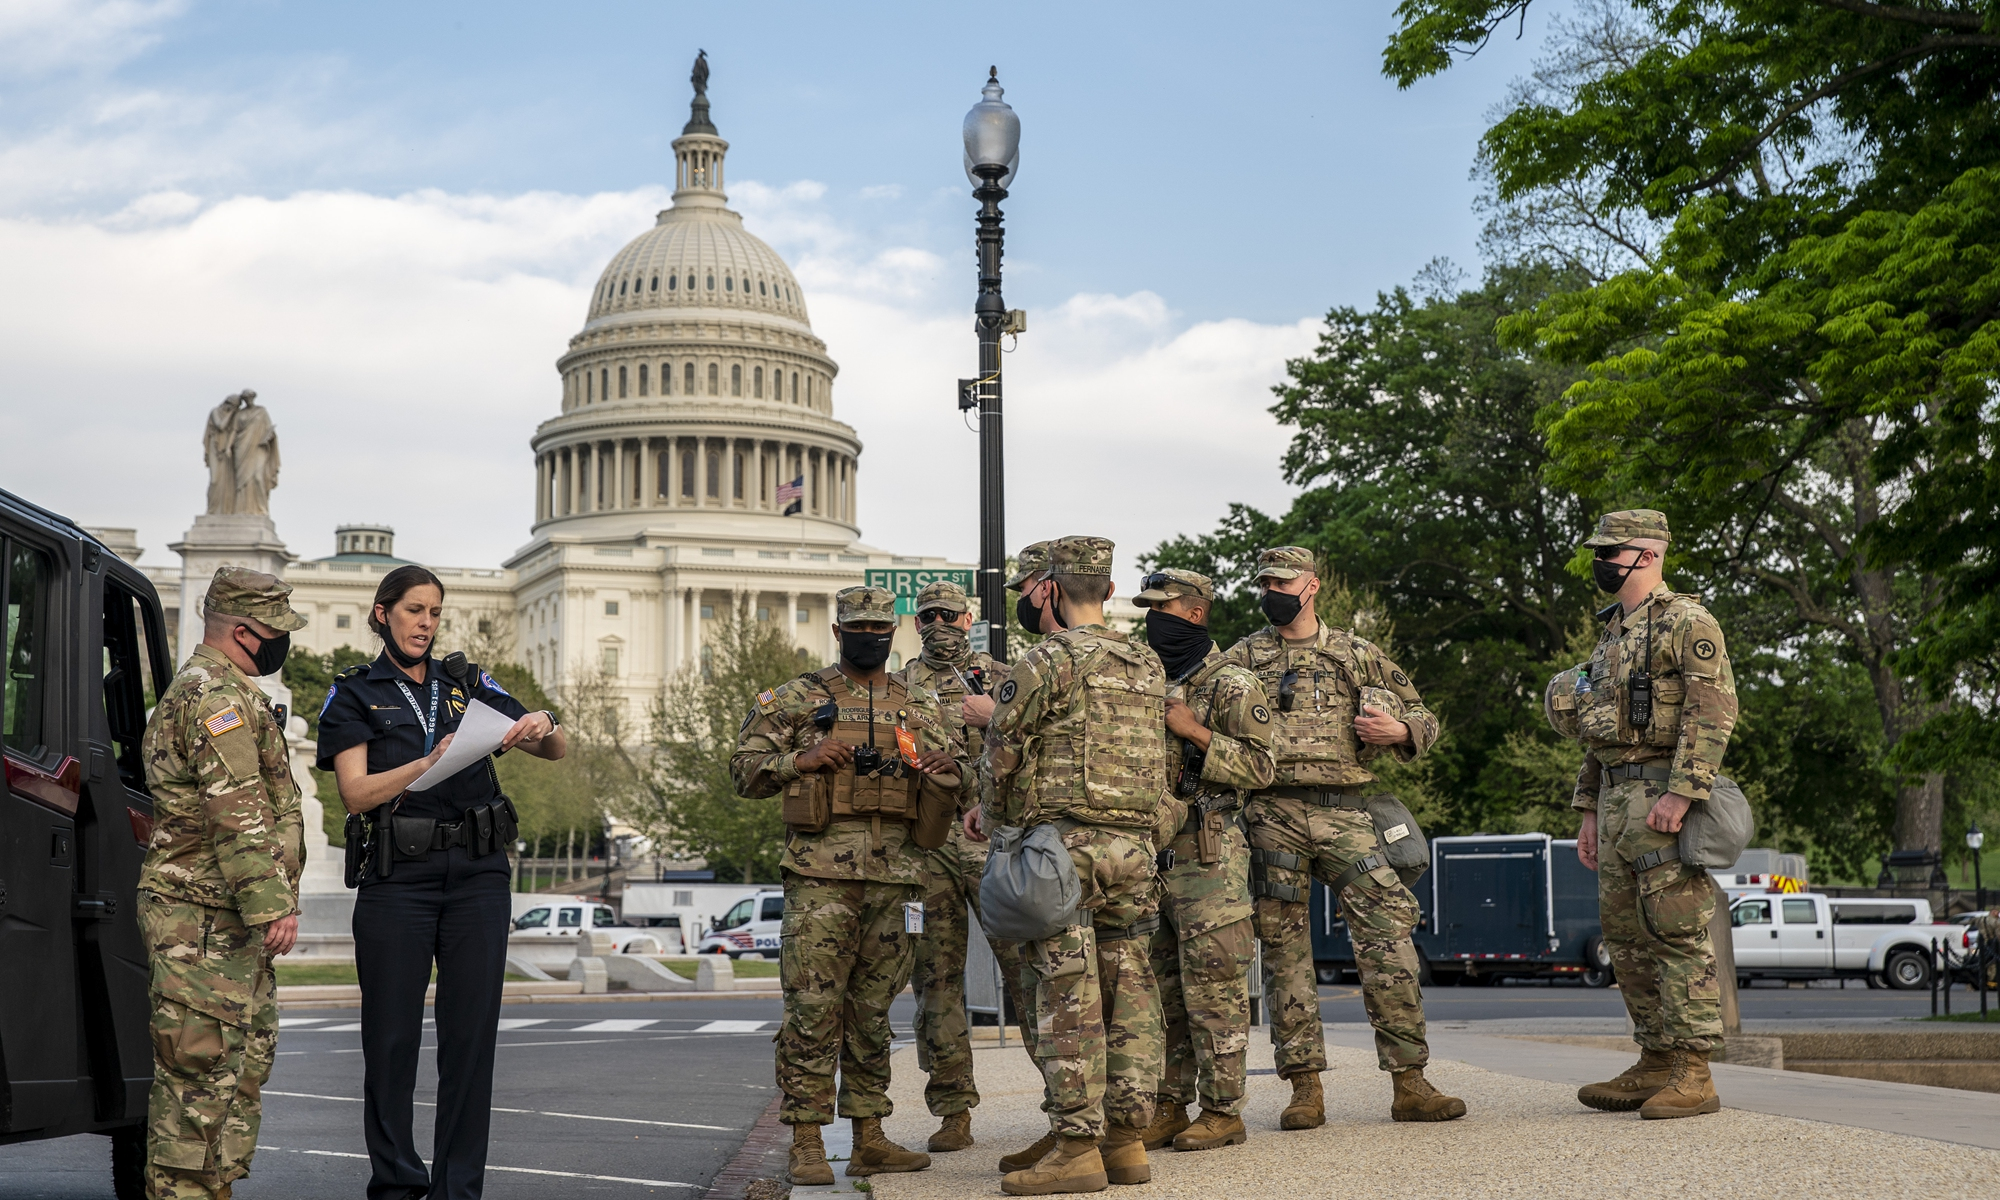 Military personnel and Capitol Hill Police department stand guard outside the US Capitol before US President Joe Biden addresses a joint session of Congress in the US Capitol on Wednesday in Washington, DC (See story on Page 5).Photo: VCG